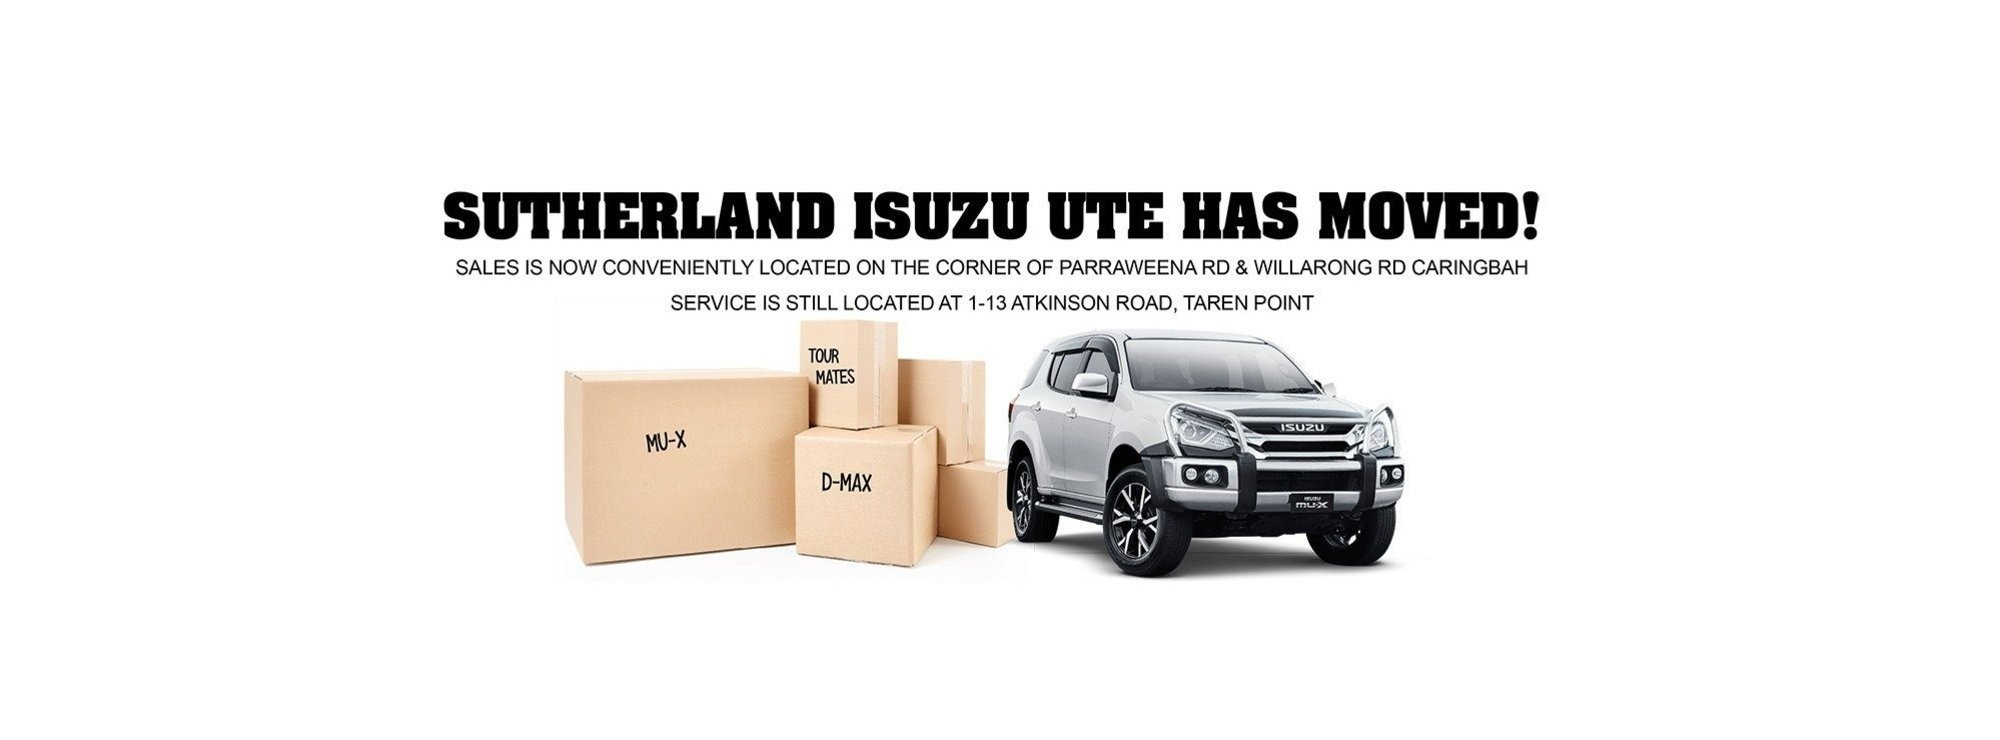 Sutherland Isuzu UTE - Sales Relocation